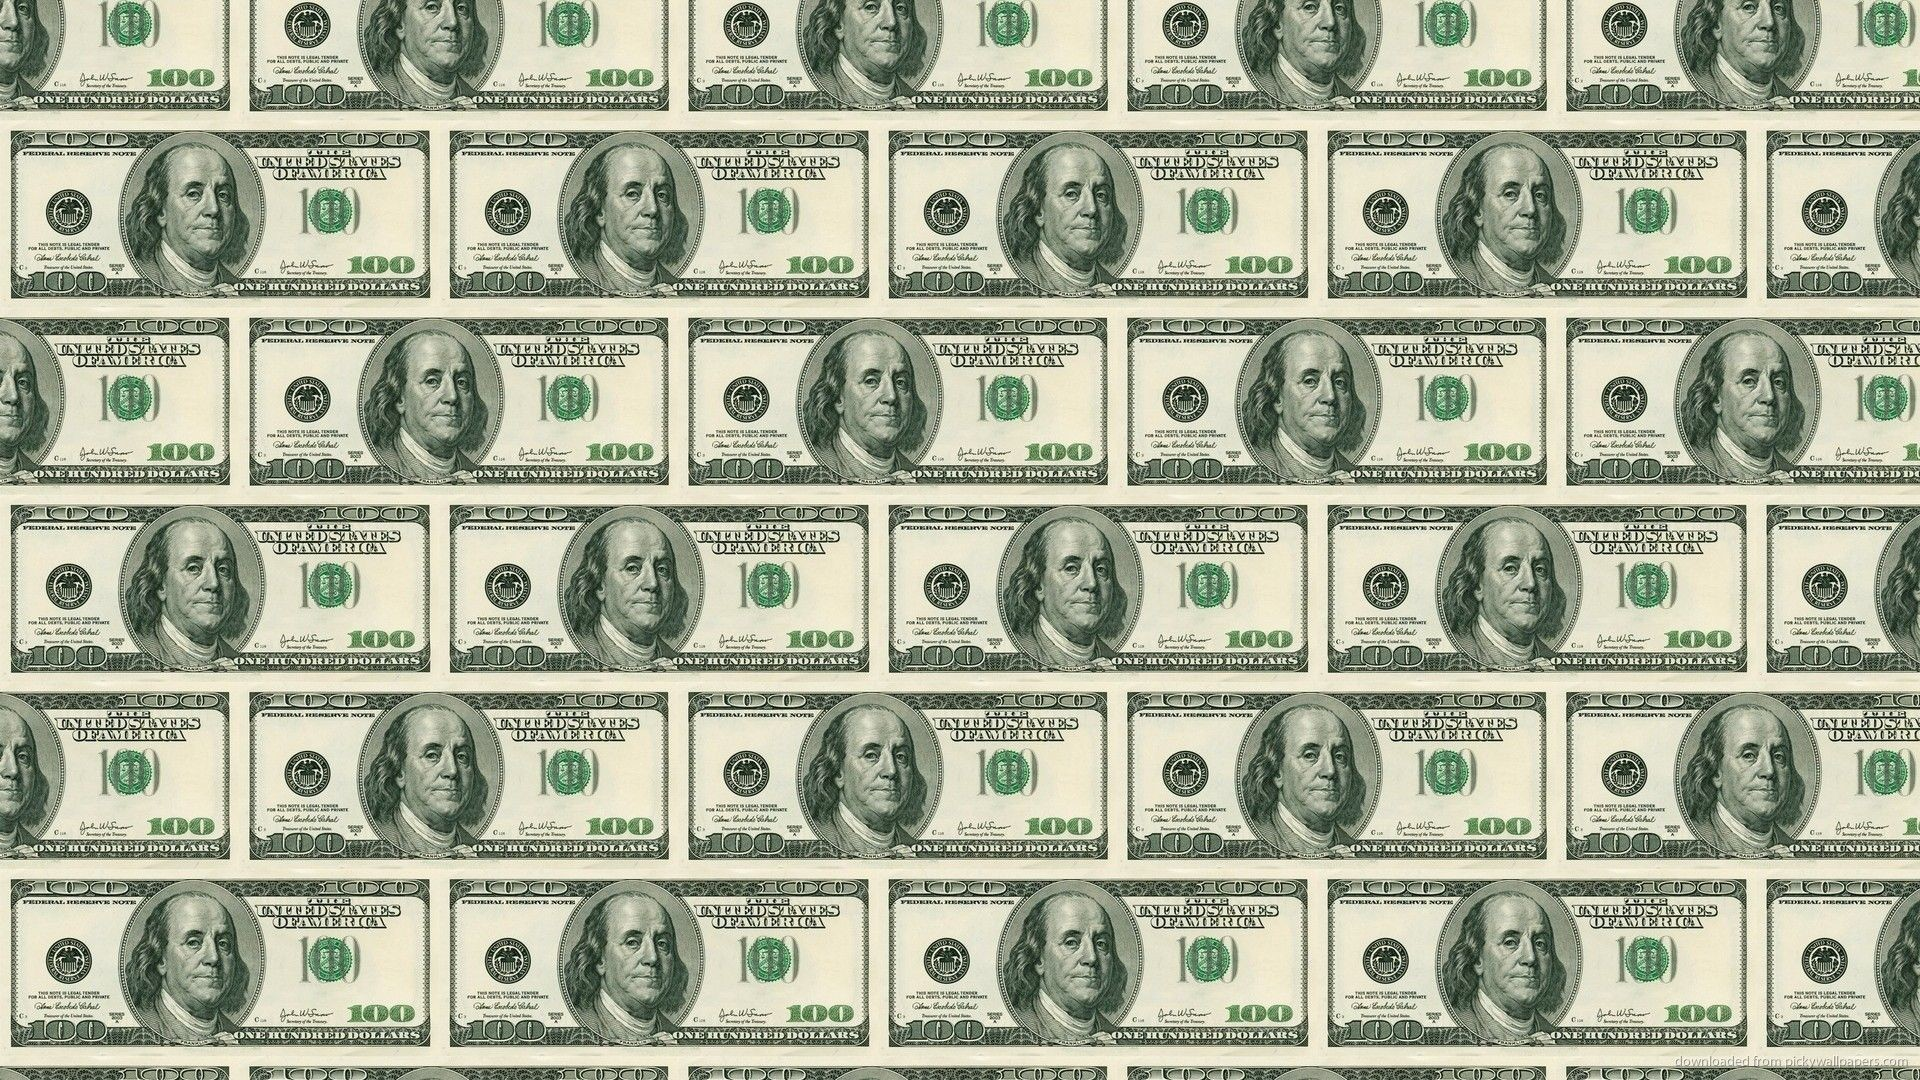 1920x1080 100 Dollar Bill Pattern Wallpaper For iPhone 4